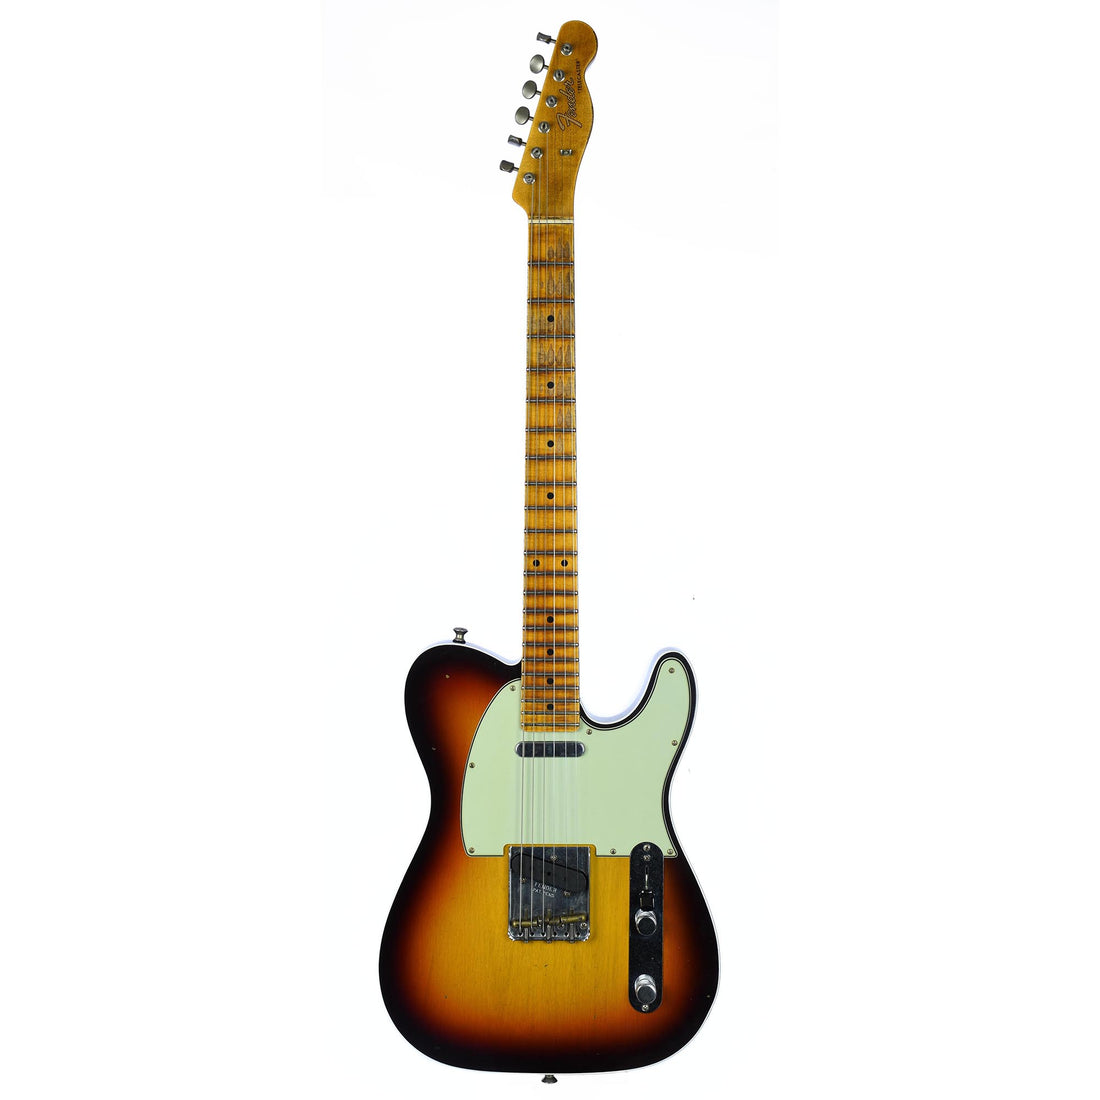 Fender Custom 2019 Custom Postmodern Telecaster Maple Journeyman Relic Chocolate 3 Color Sunburst